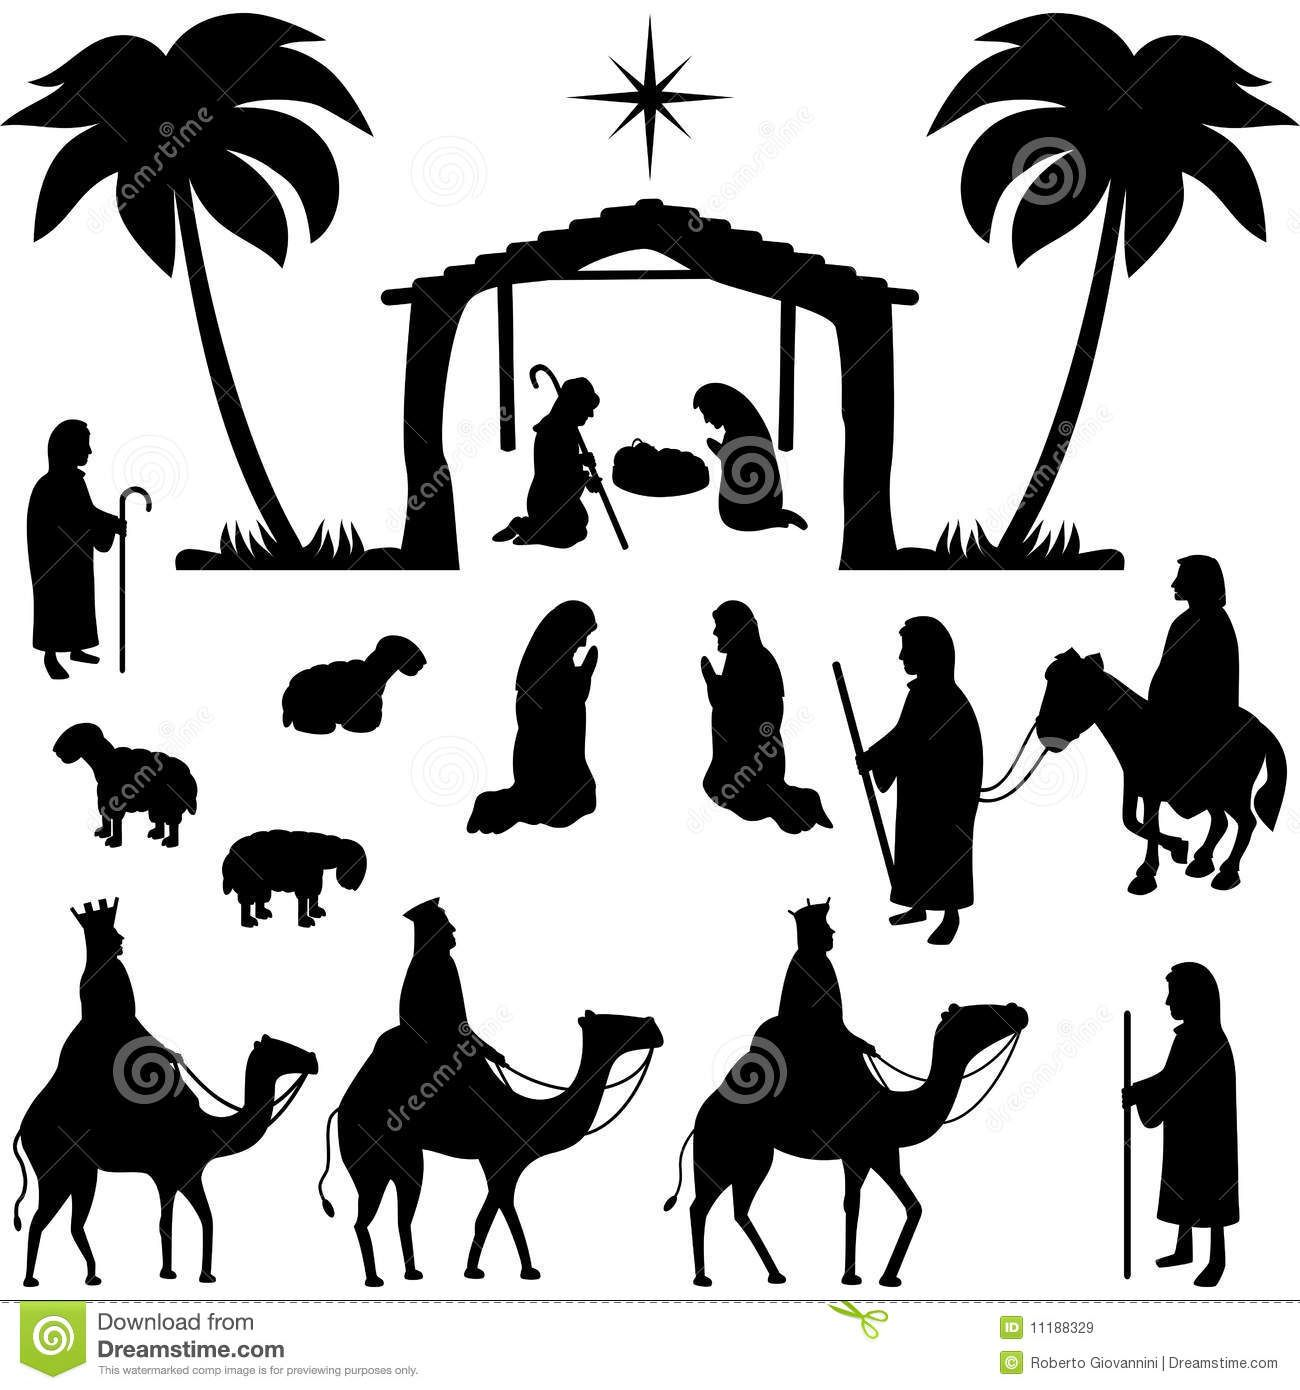 small resolution of nativity silhouettes collection download from over 27 million high quality stock photos images vectors sign up for free today image 11188329